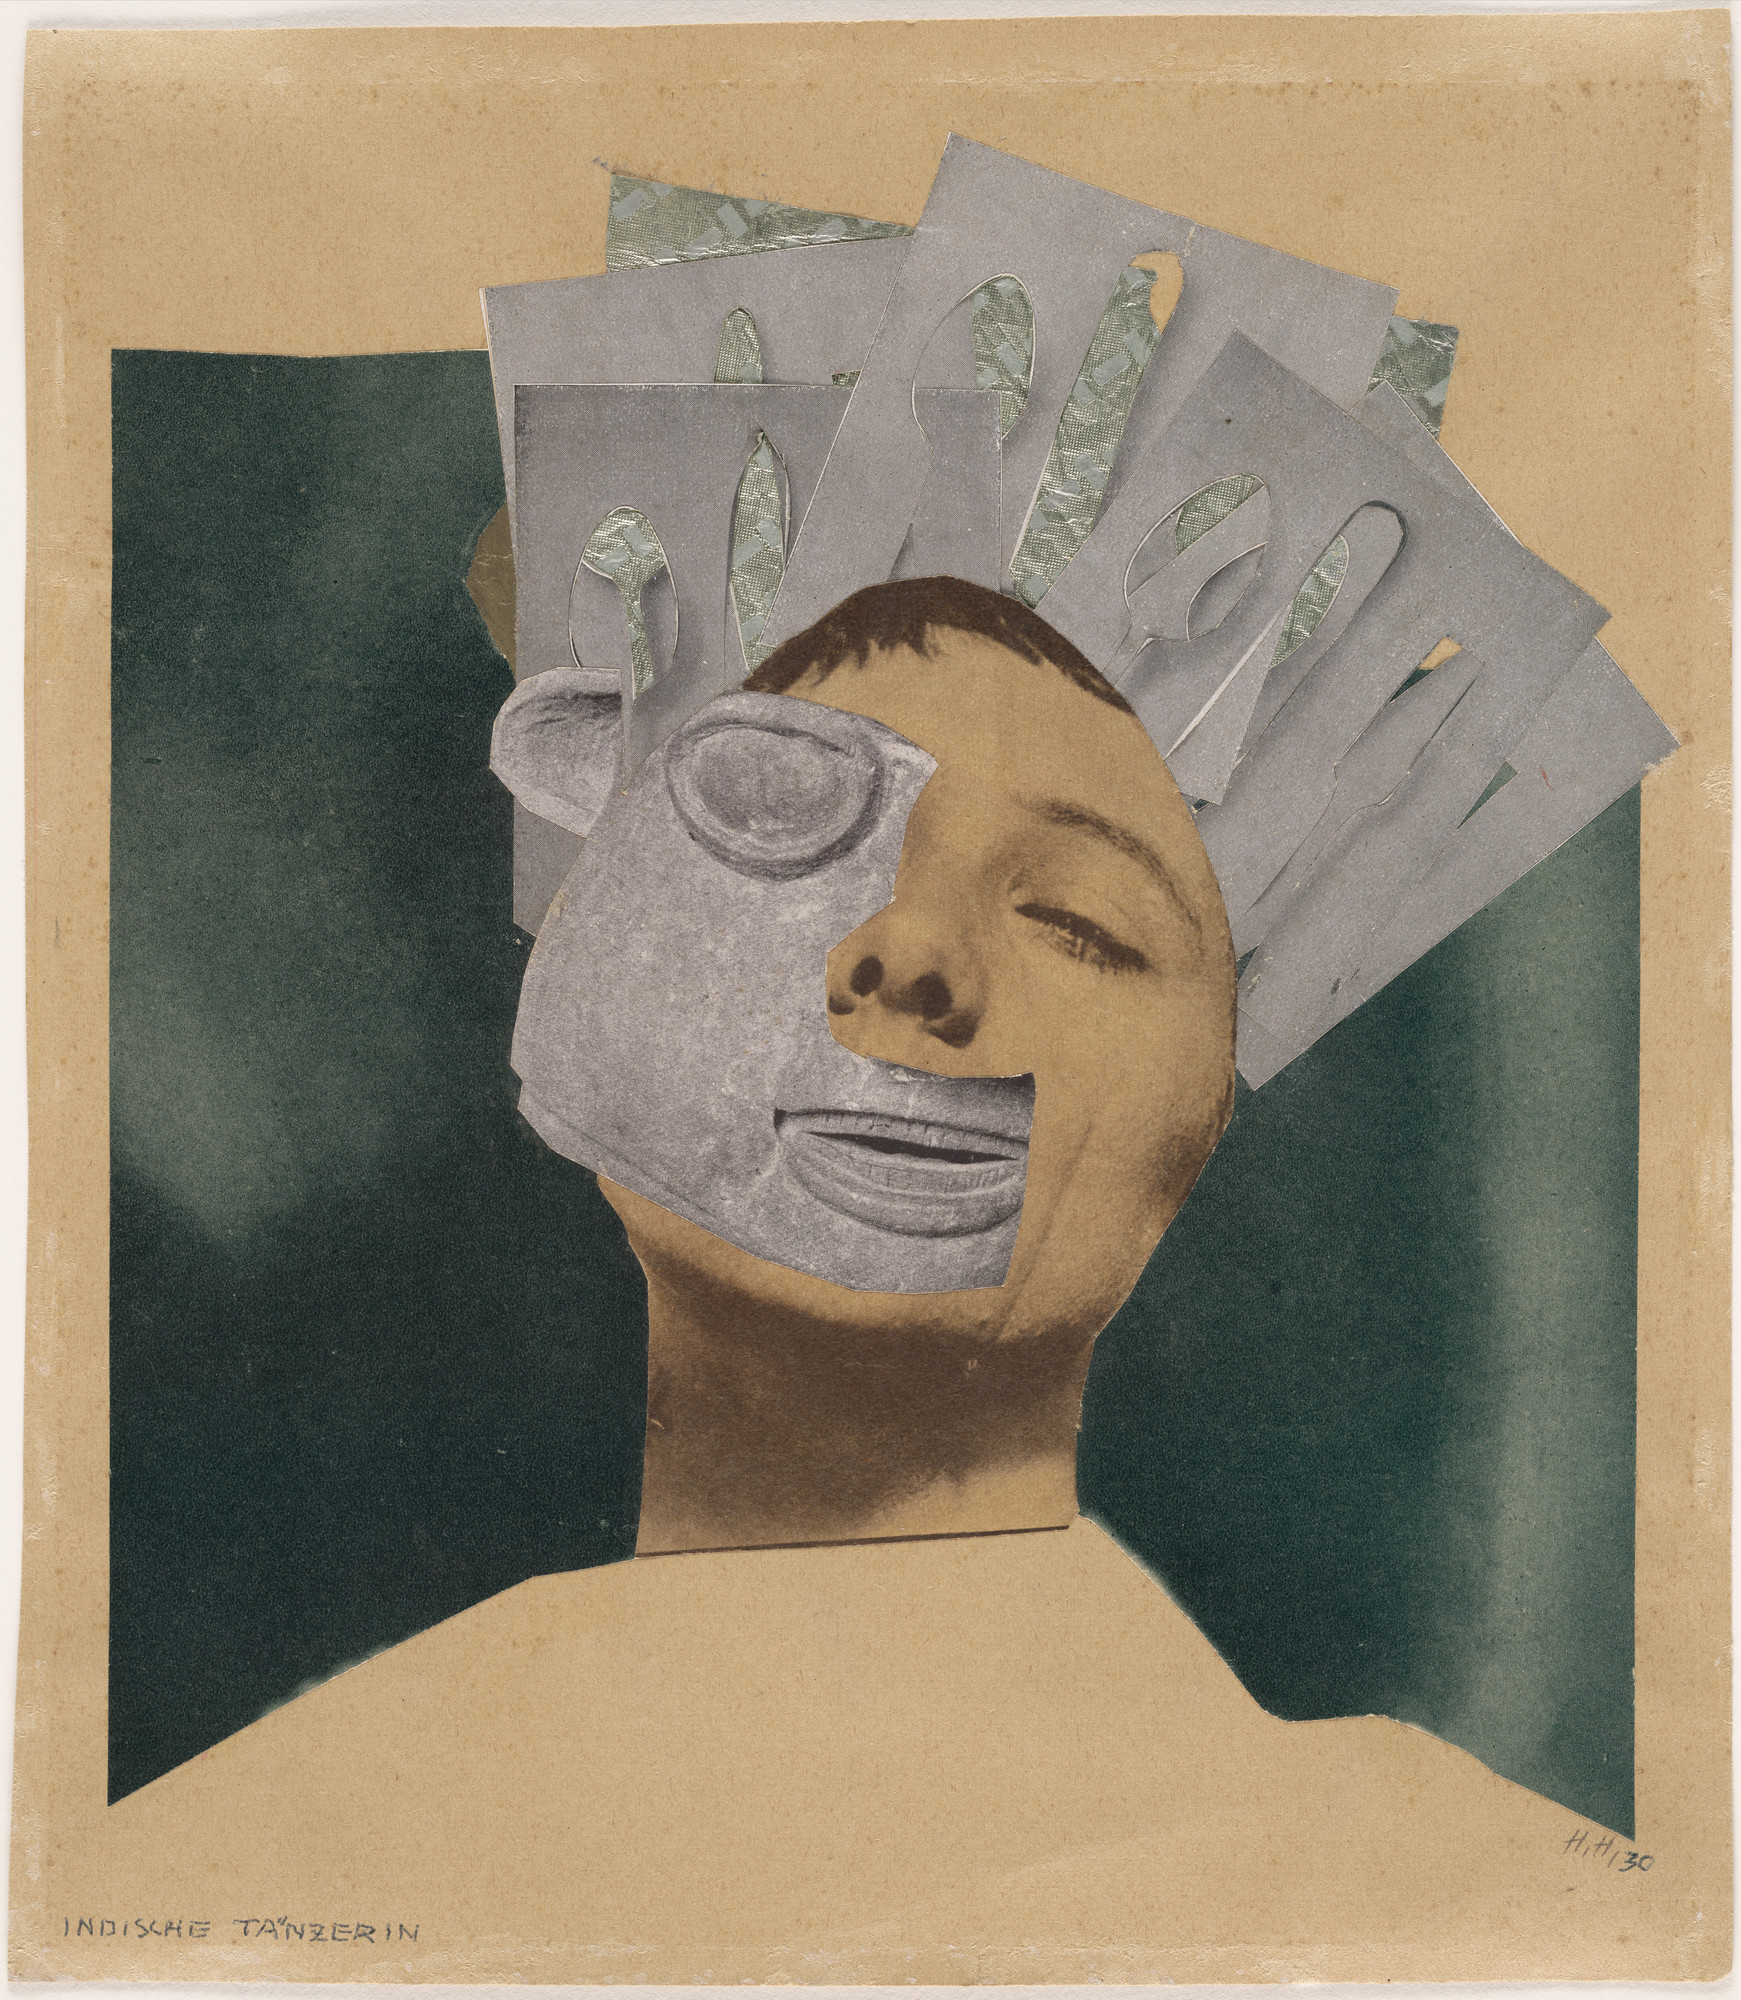 Hannah Höch. Indian Dancer: From an Ethnographic Museum. 1930. Photomontage with collage, 10 1/8 × 8 7/8″. Frances Keech Fund. © 2016 Hannah Höch / Artists Rights Society (ARS), New York / VG Bild-Kunst, Germany